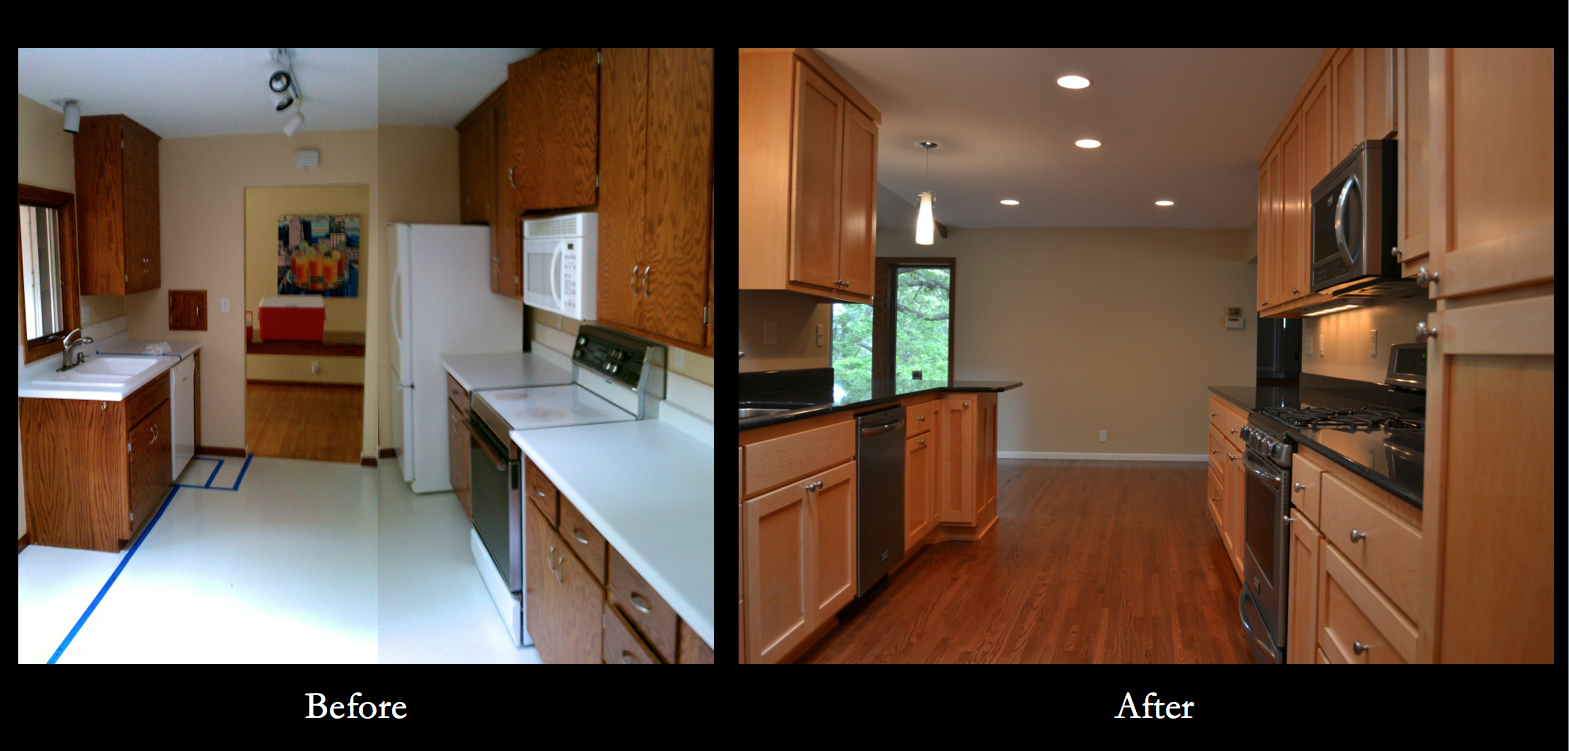 Remodel Pictures Before And After home renovation before and after - nicer on the eyes and makes the